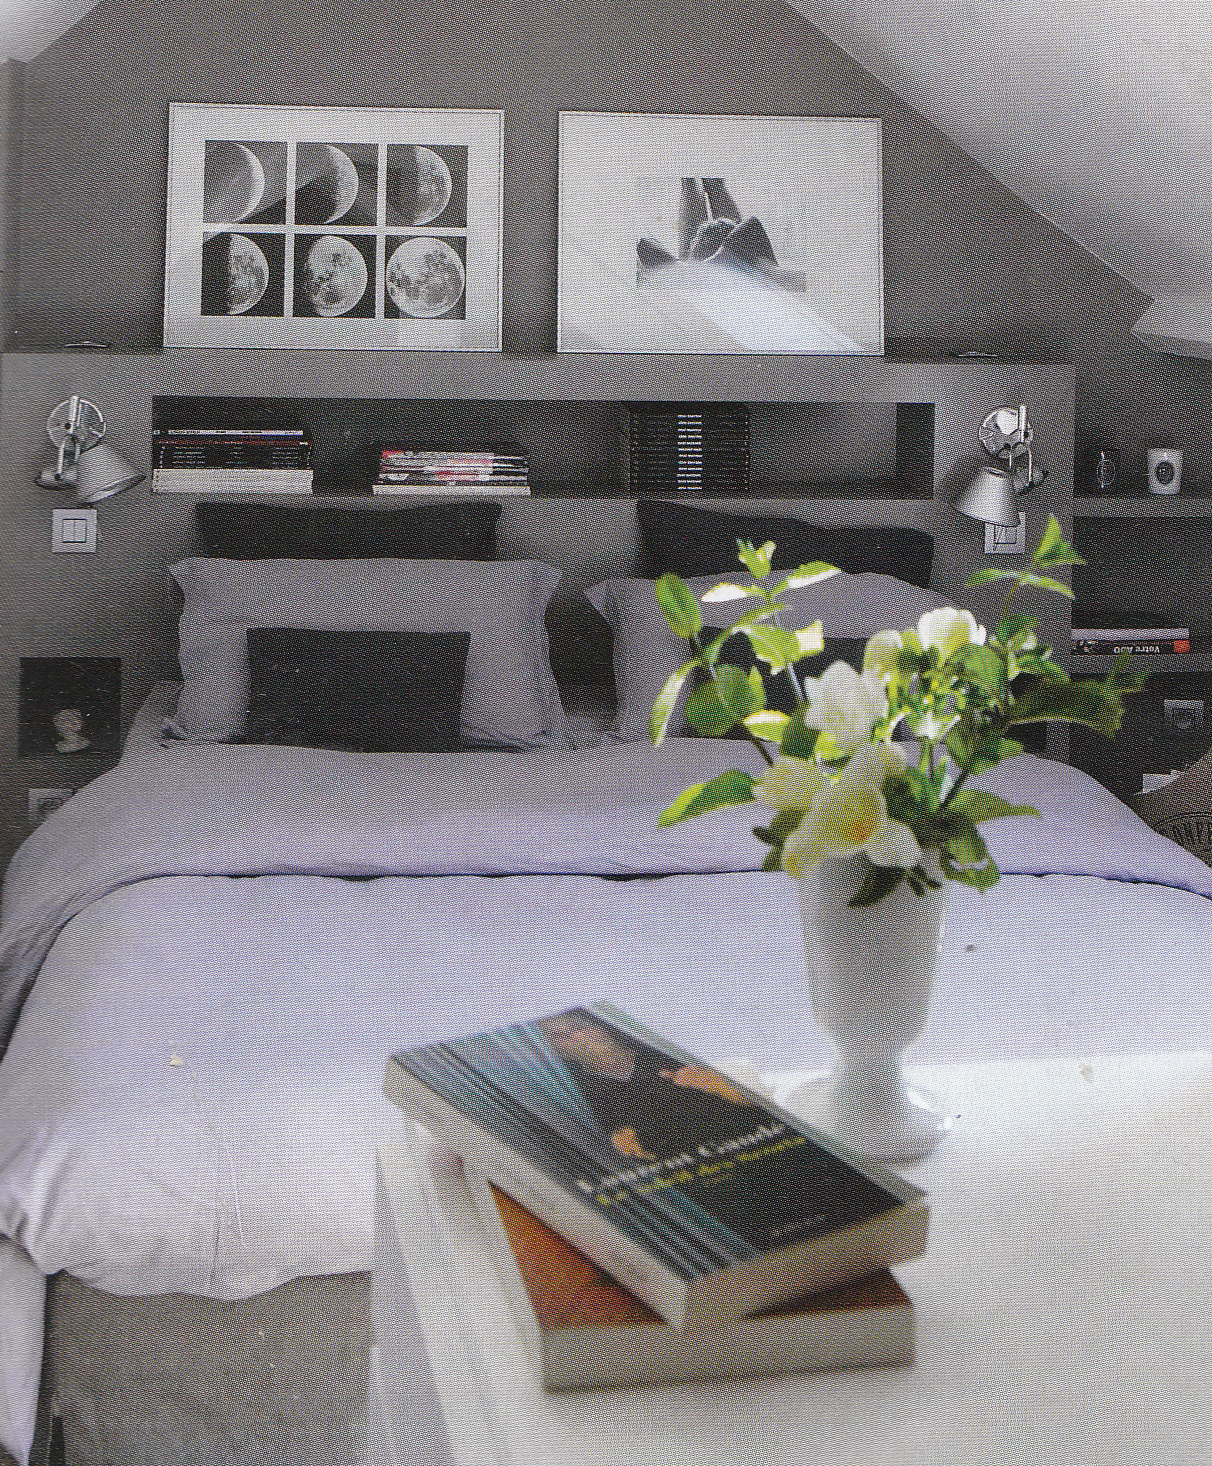 isabelle h d coration et home staging janvier 2012. Black Bedroom Furniture Sets. Home Design Ideas